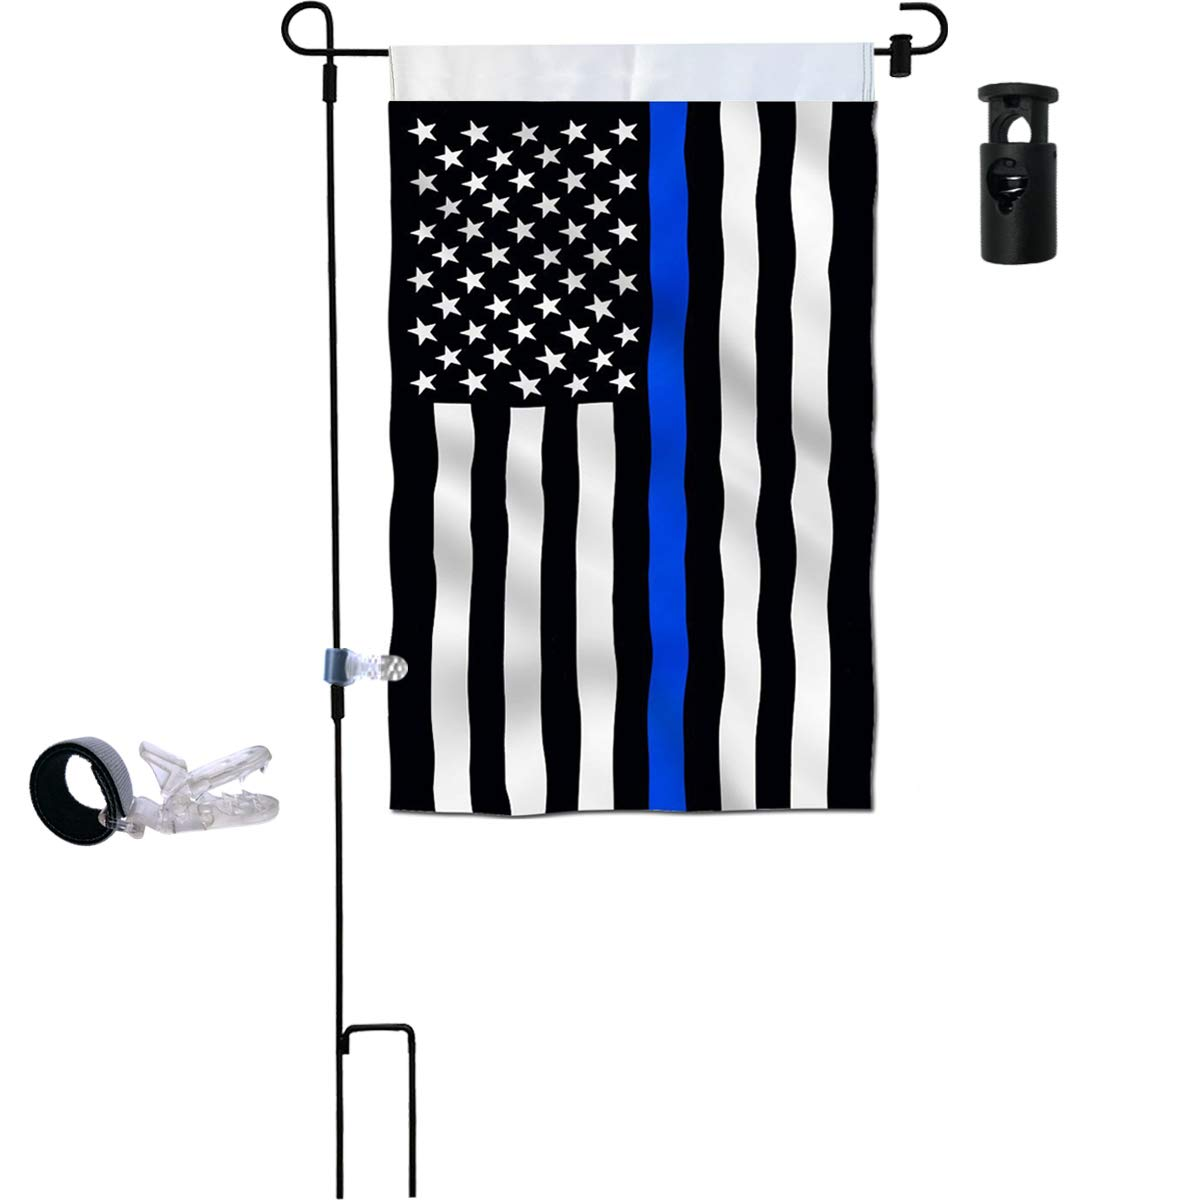 Garden Flag Stand Thin Blue Line Garden Flag Double Sided 12.5 x 18 Inch with Anti Wind Clip, Stopper Best for Garden Decoration Flags